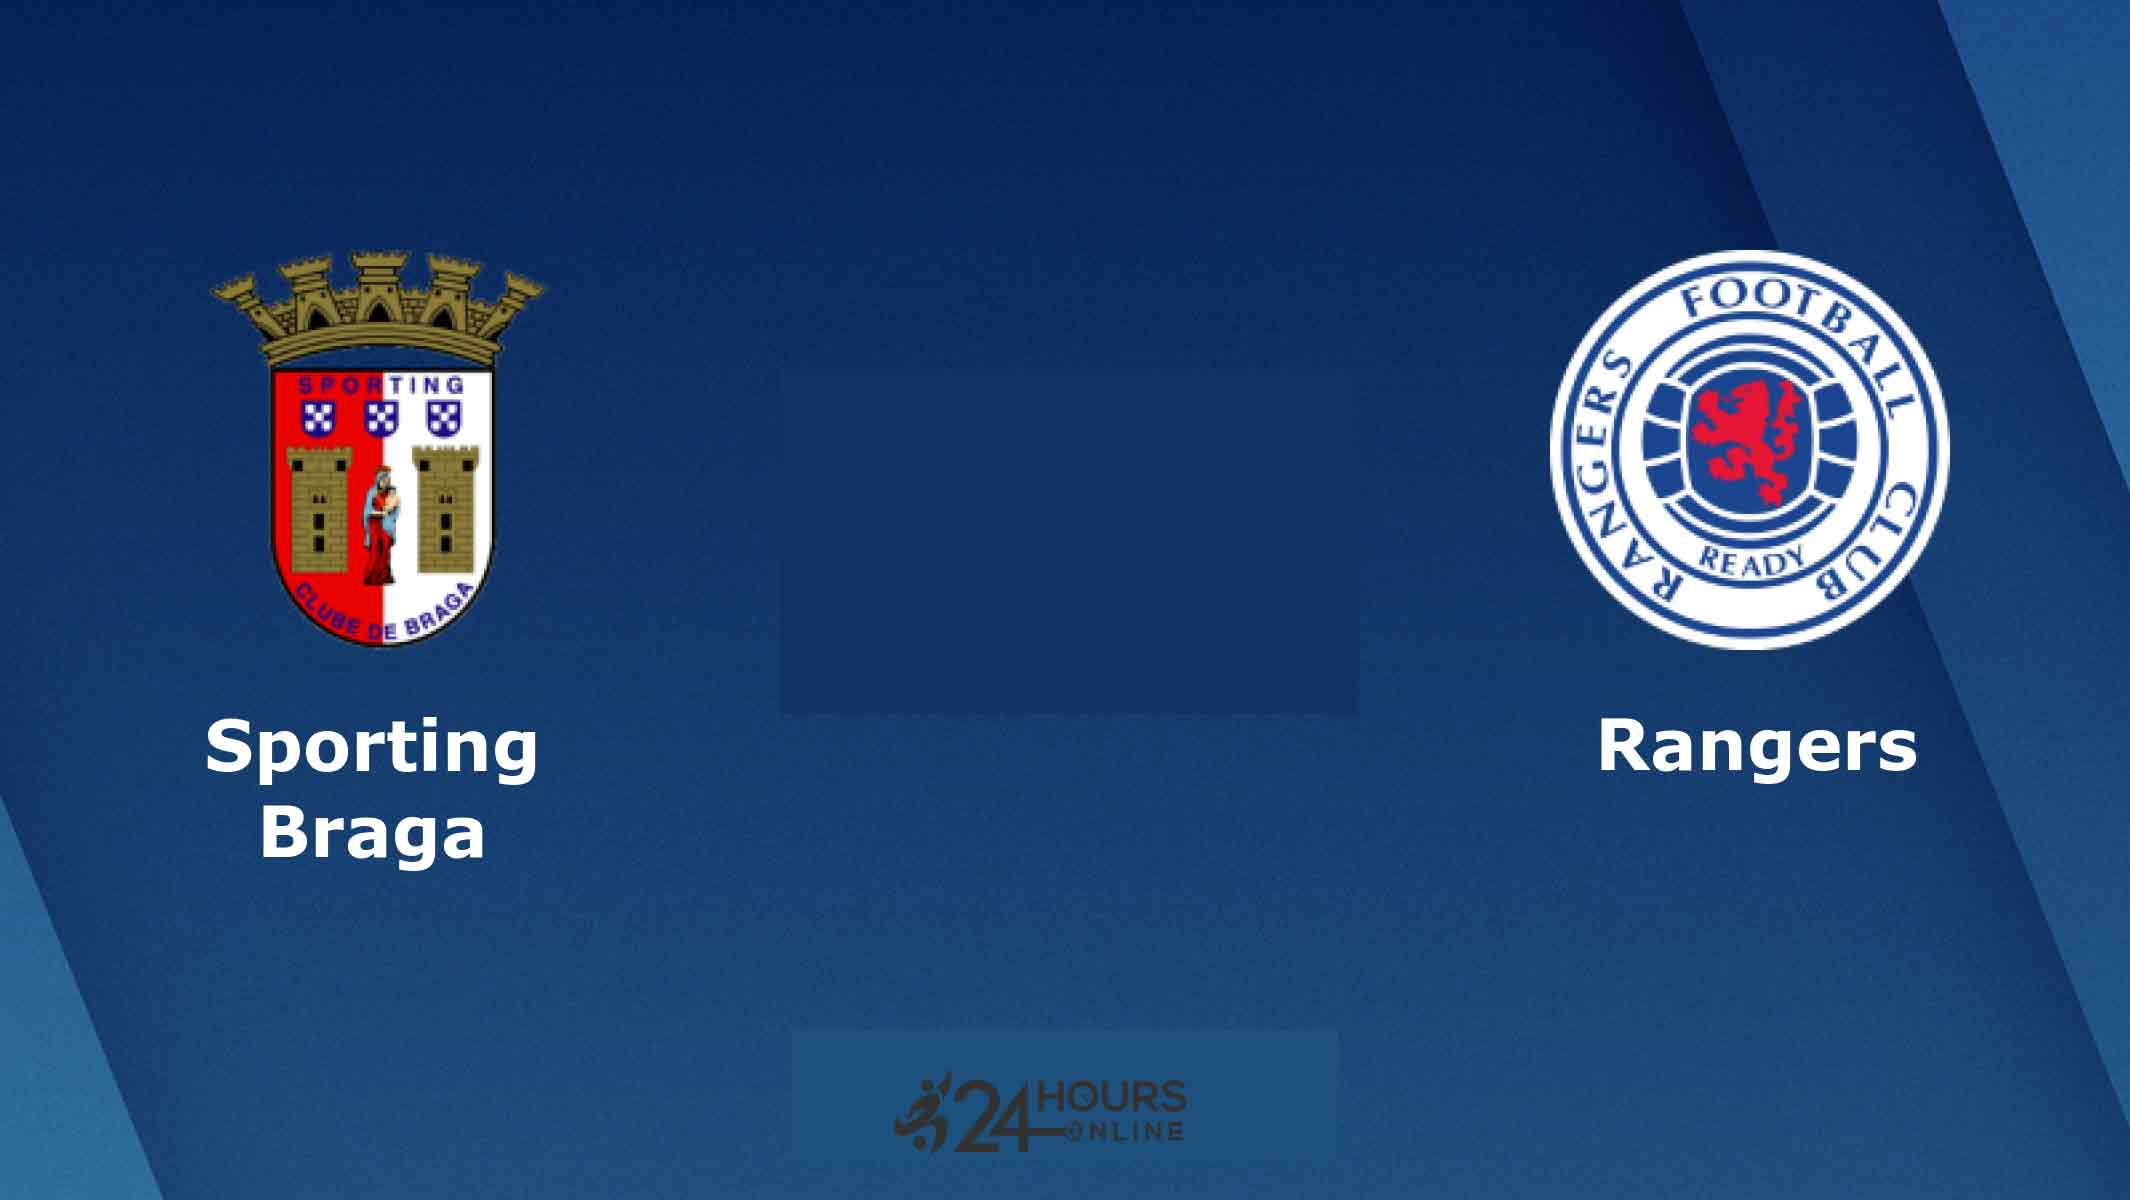 Sporting Braga vs Rangers Live Streaming Football Match Preview Today